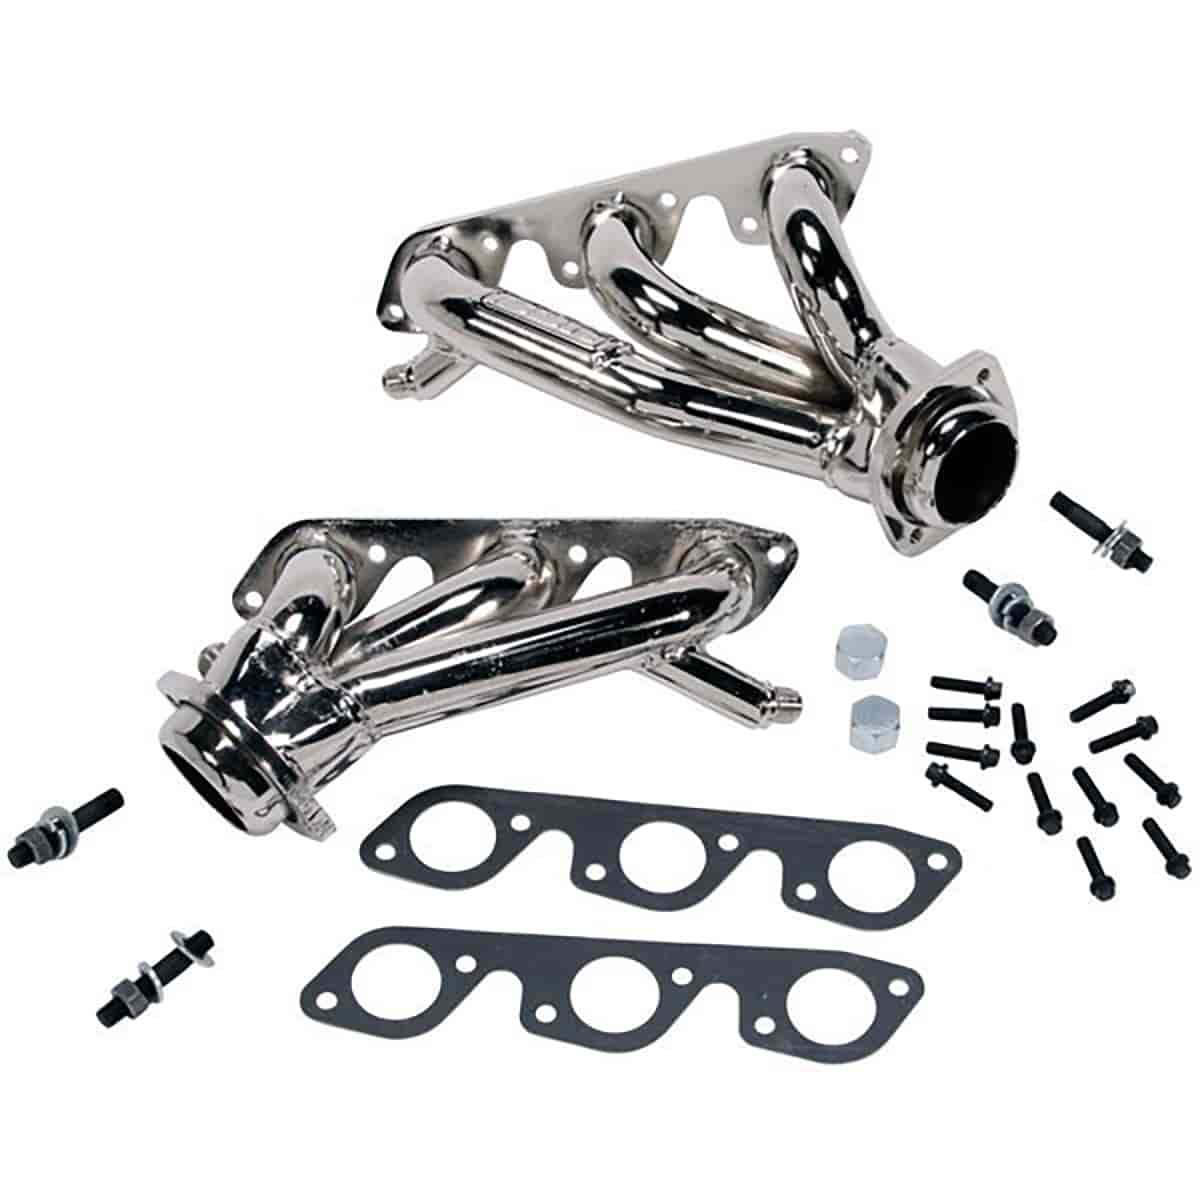 BBK Performance Parts 4008